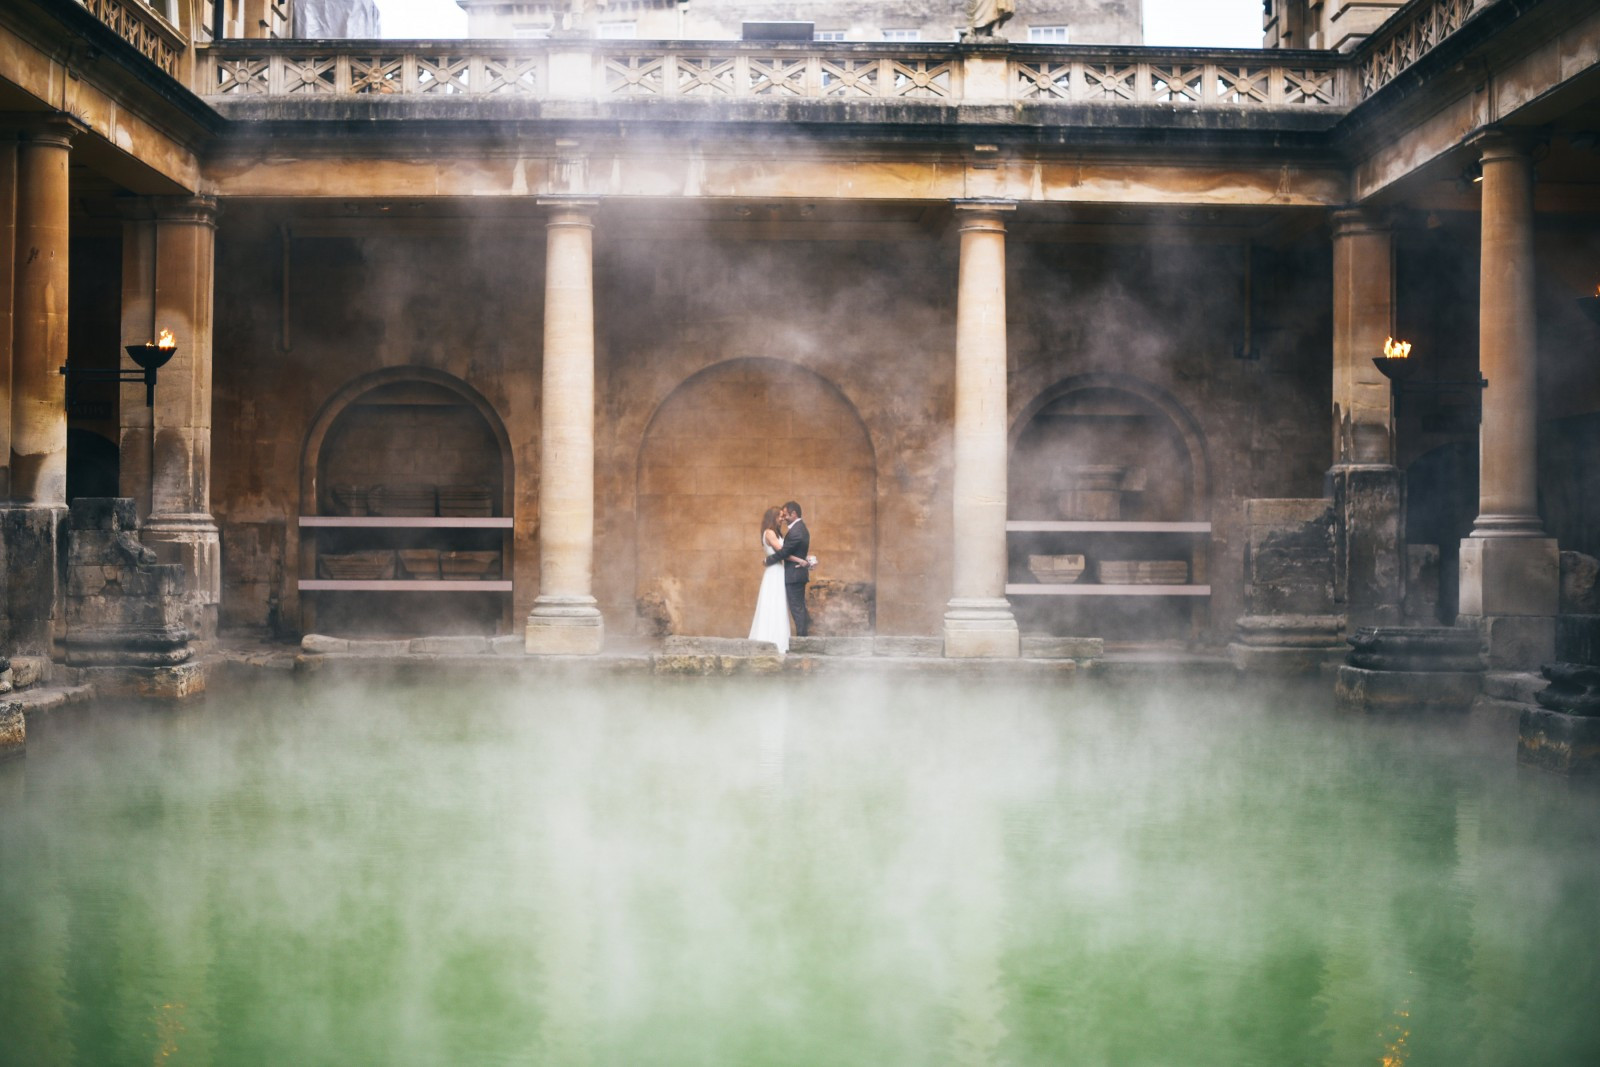 roman baths and pump room, bath wedding venue, bath historic venues